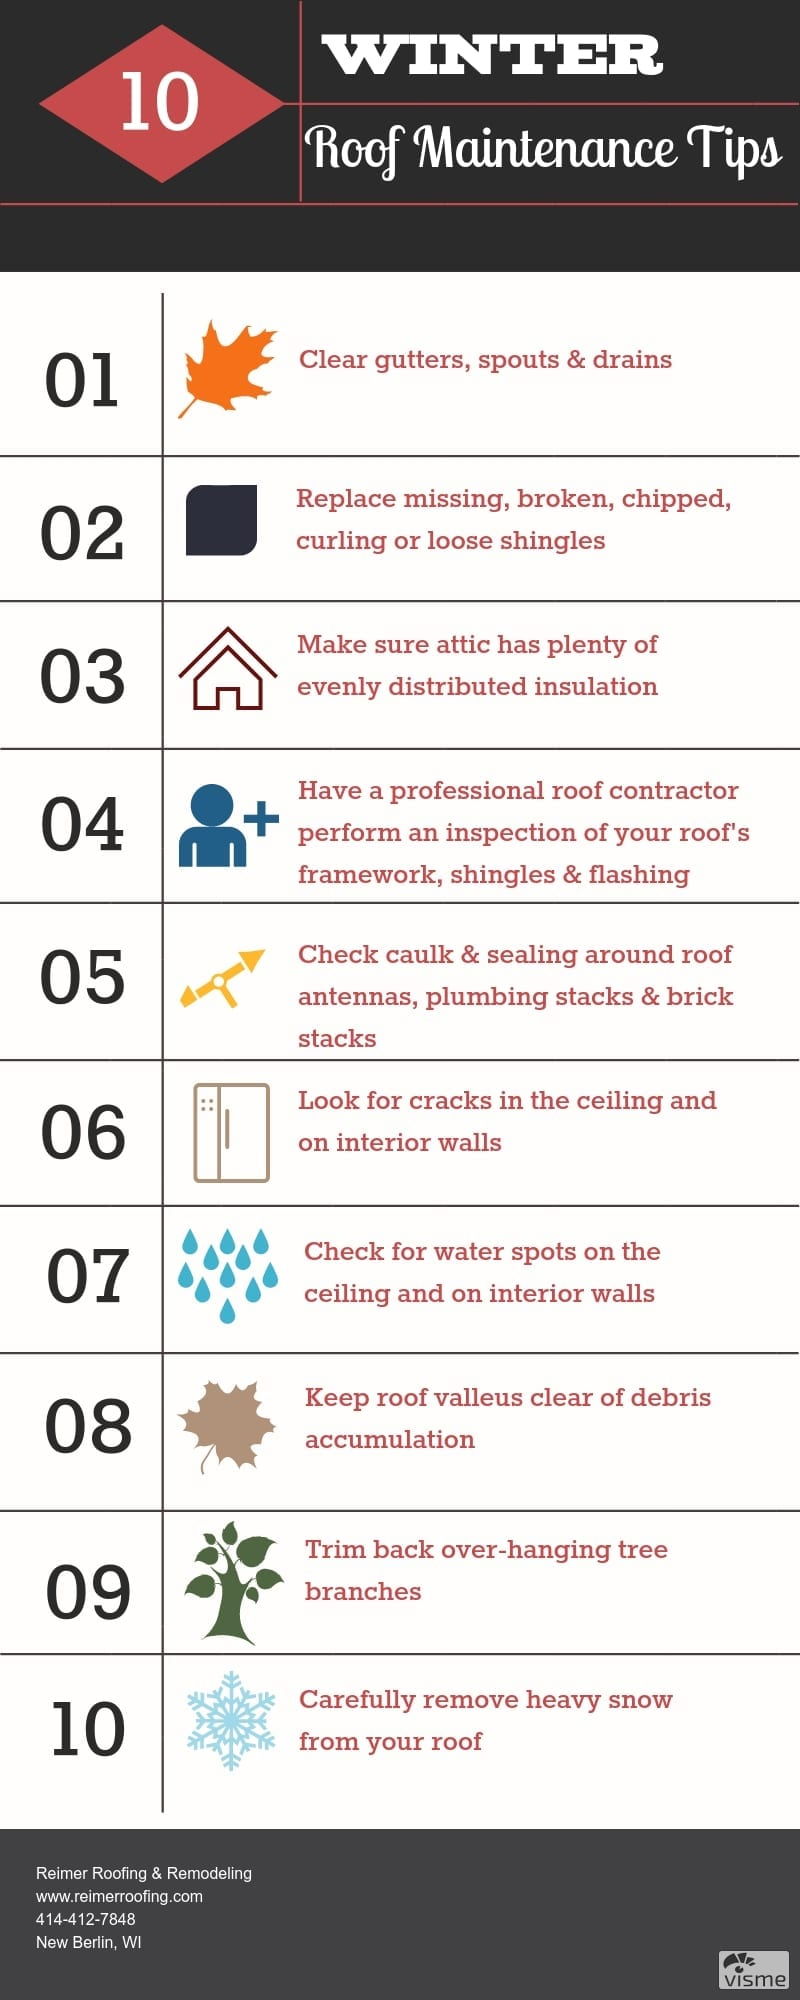 10 Winter Roof Maintenance Tips Infographic.